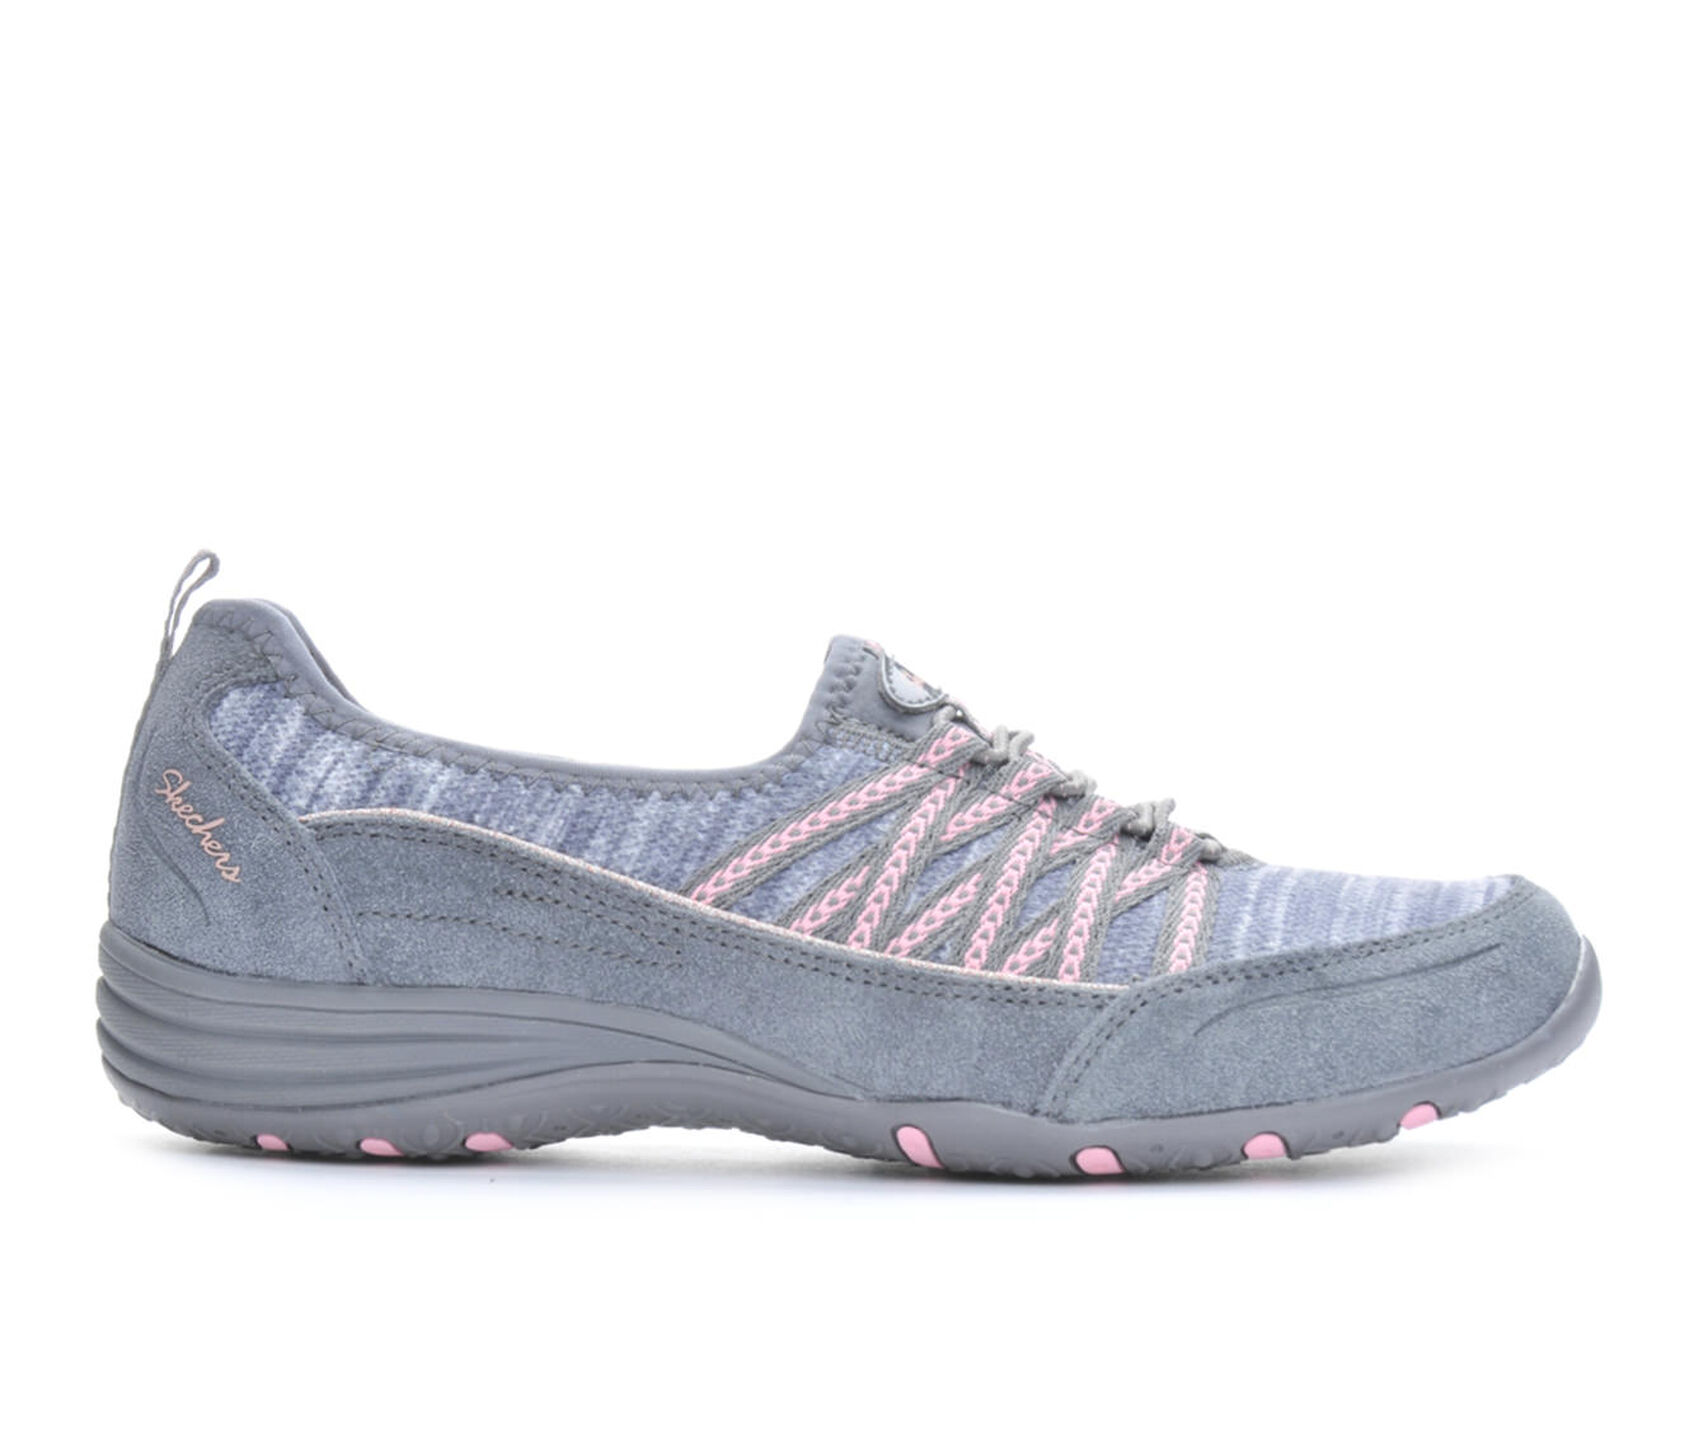 Narrow Womens Shoes Online